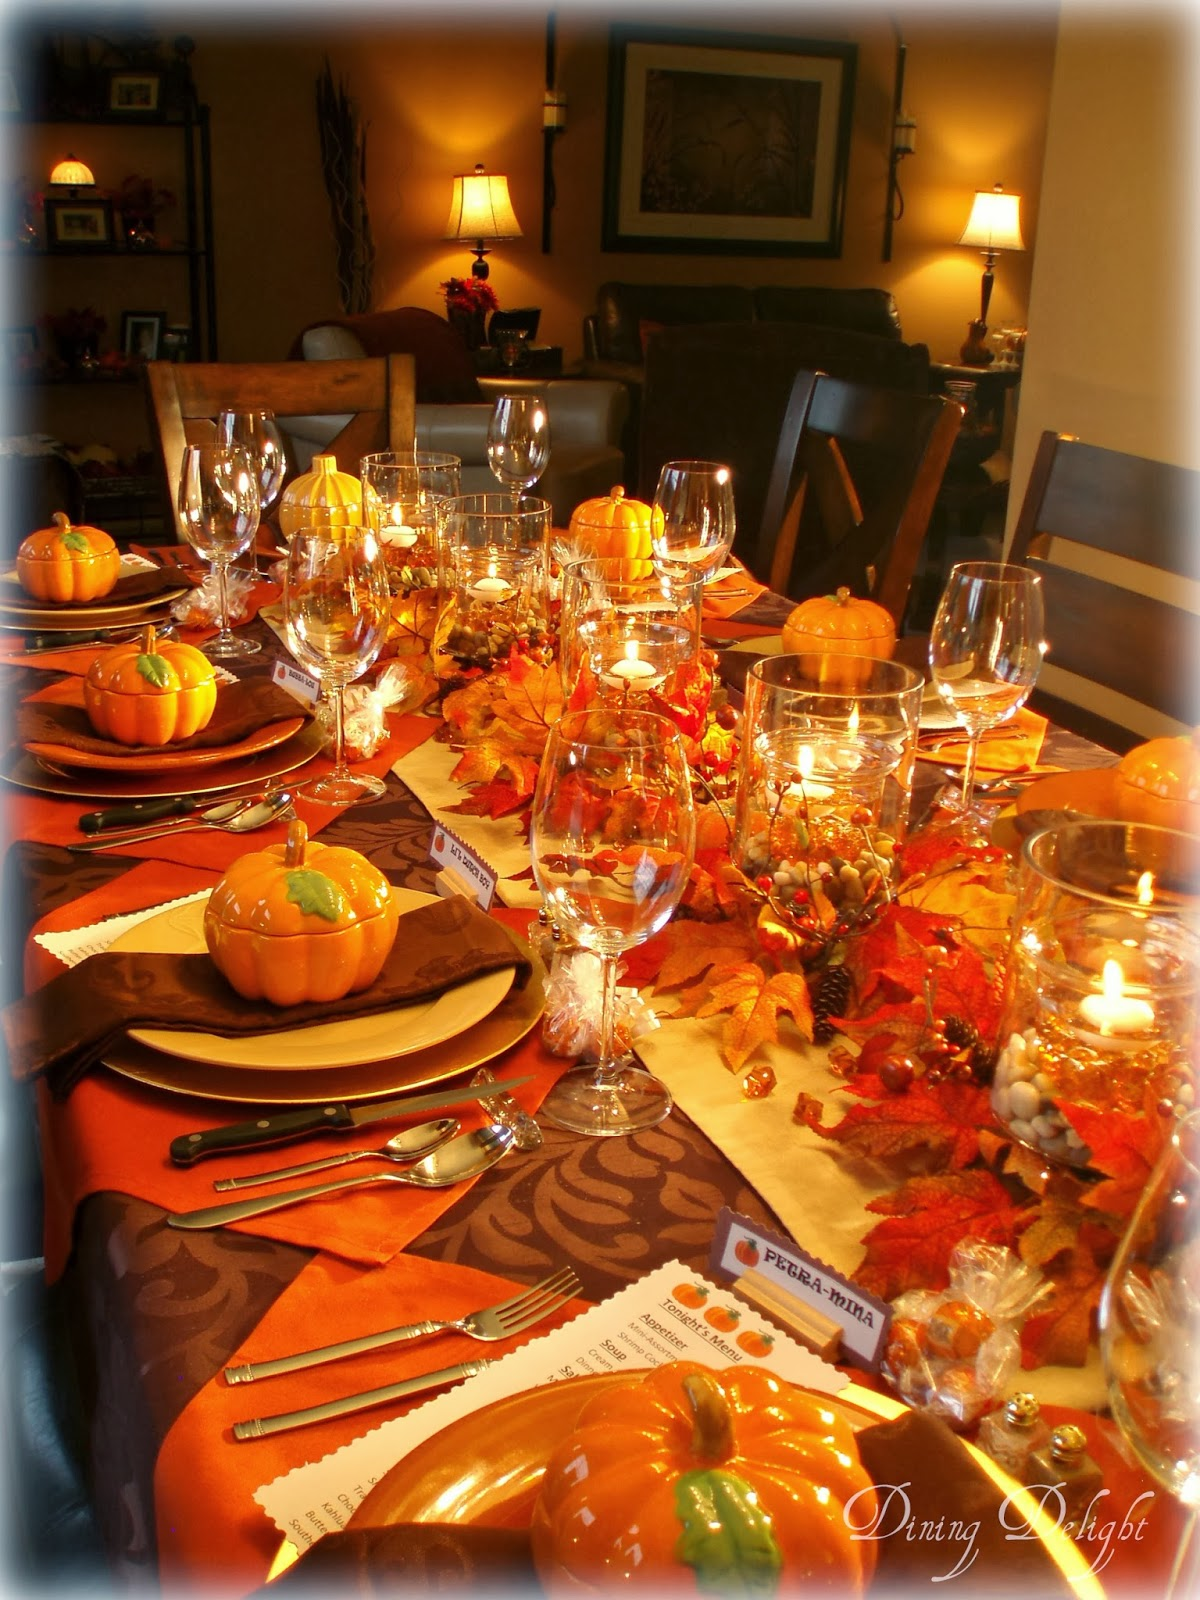 Dining delight fall dinner party for ten - Thanksgiving dinner table decorations ...